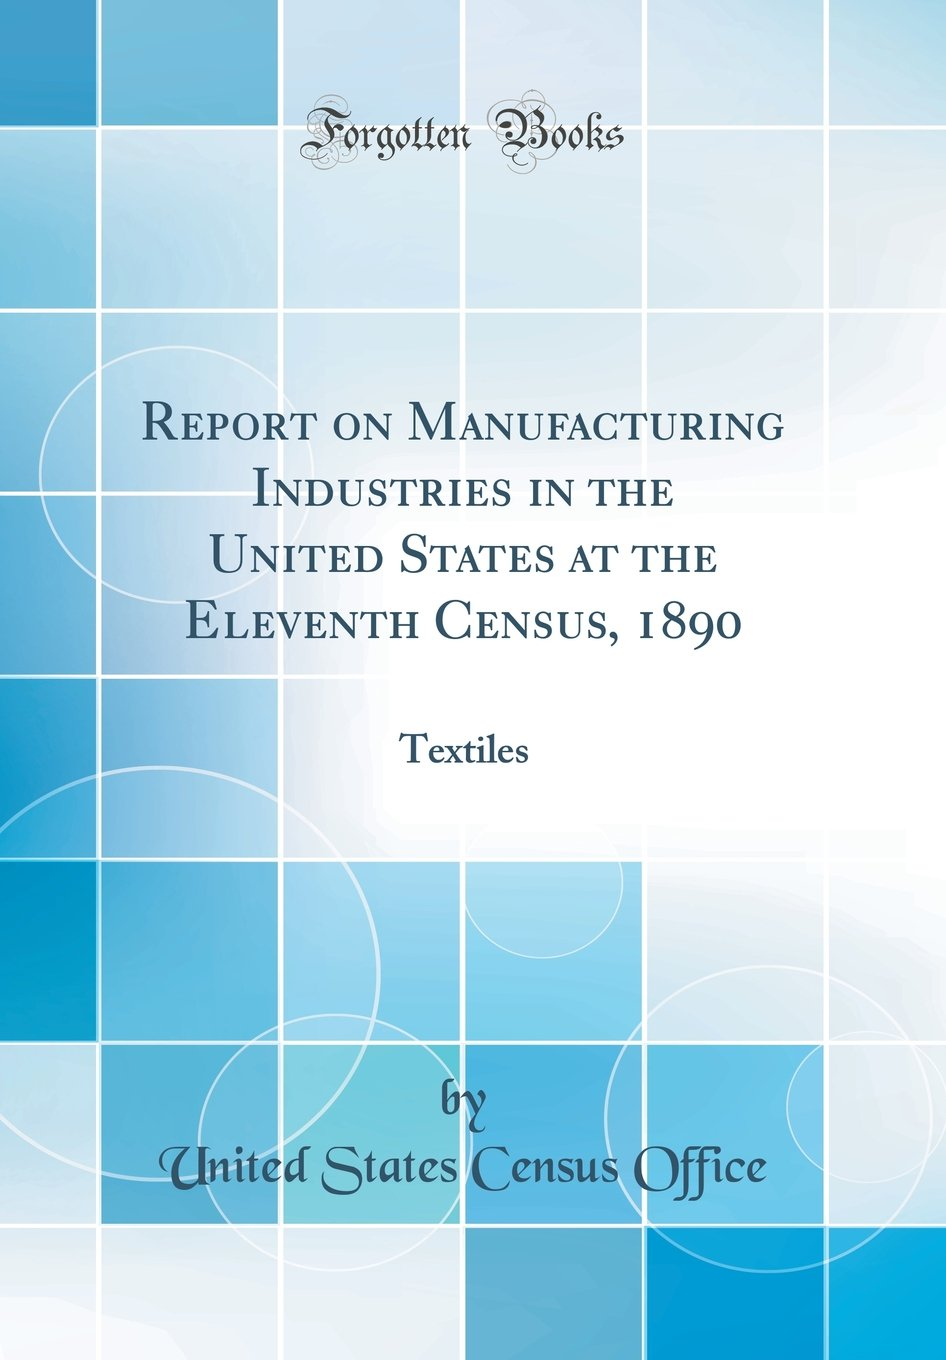 Report on Manufacturing Industries in the United States at the Eleventh Census, 1890: Textiles (Classic Reprint) pdf epub